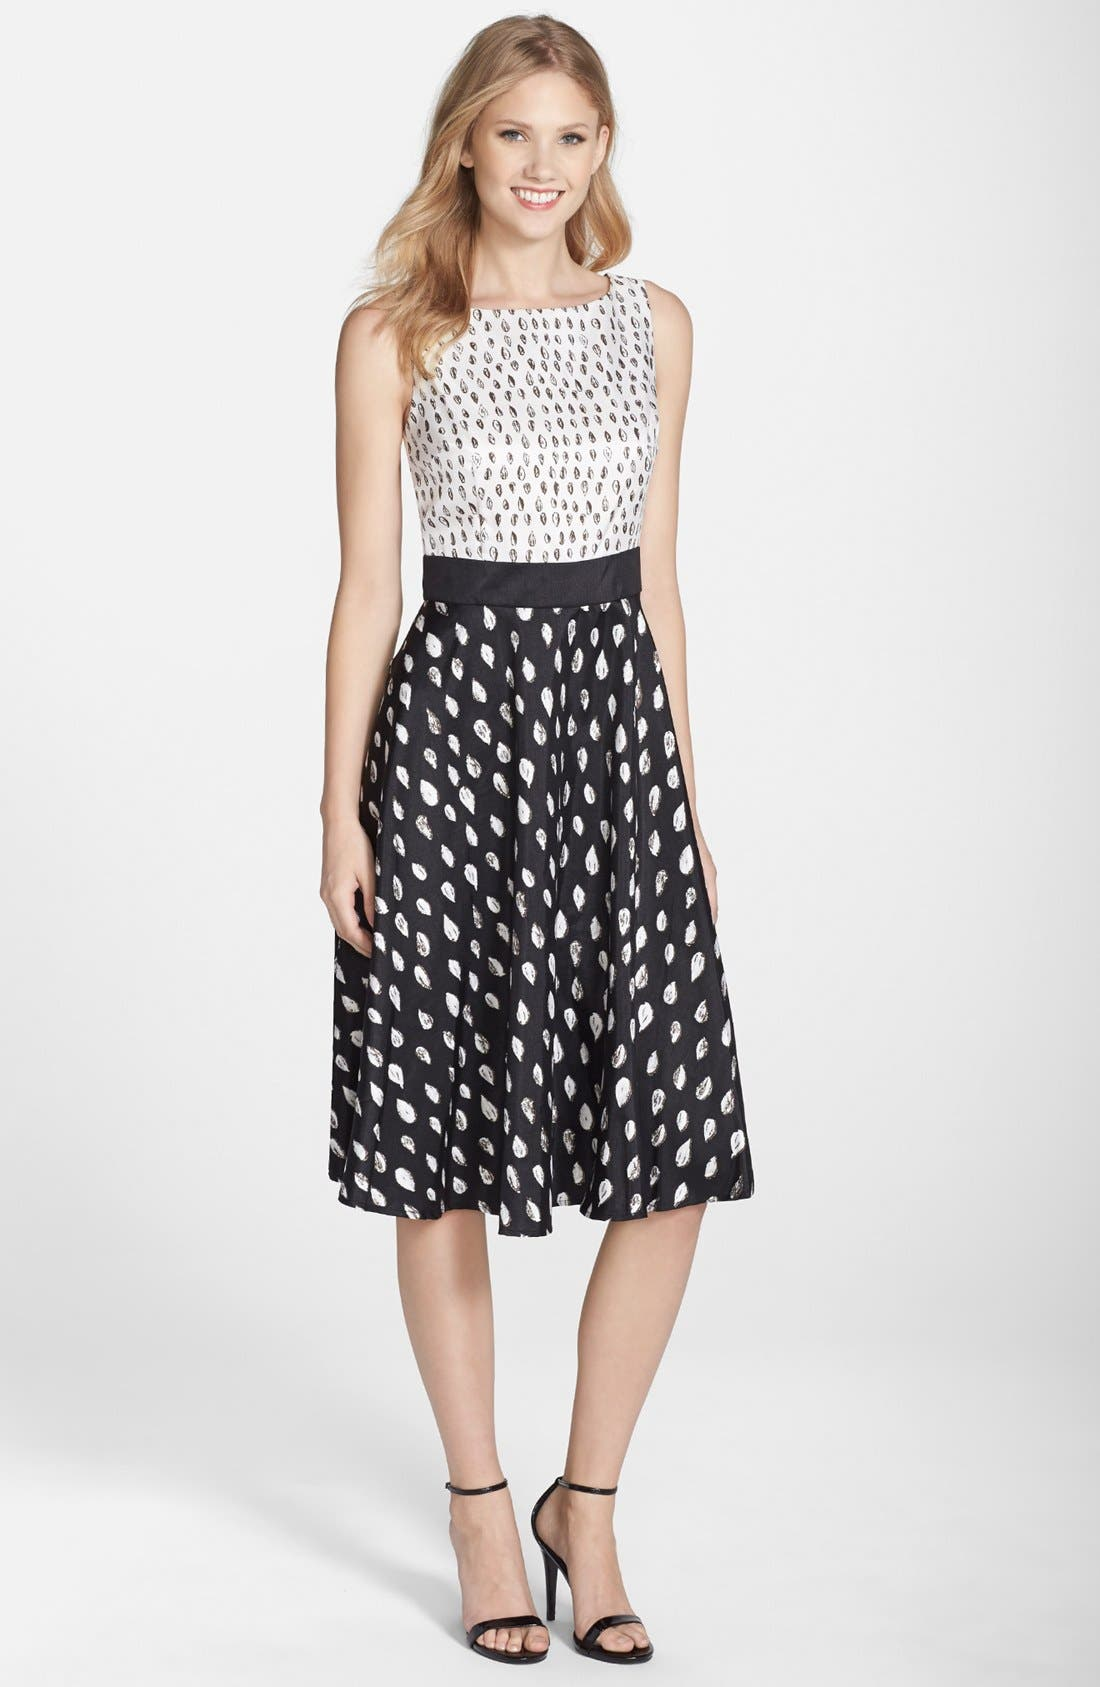 Alternate Image 1 Selected - Gabby Skye Print Shantung Fit & Flare Dress